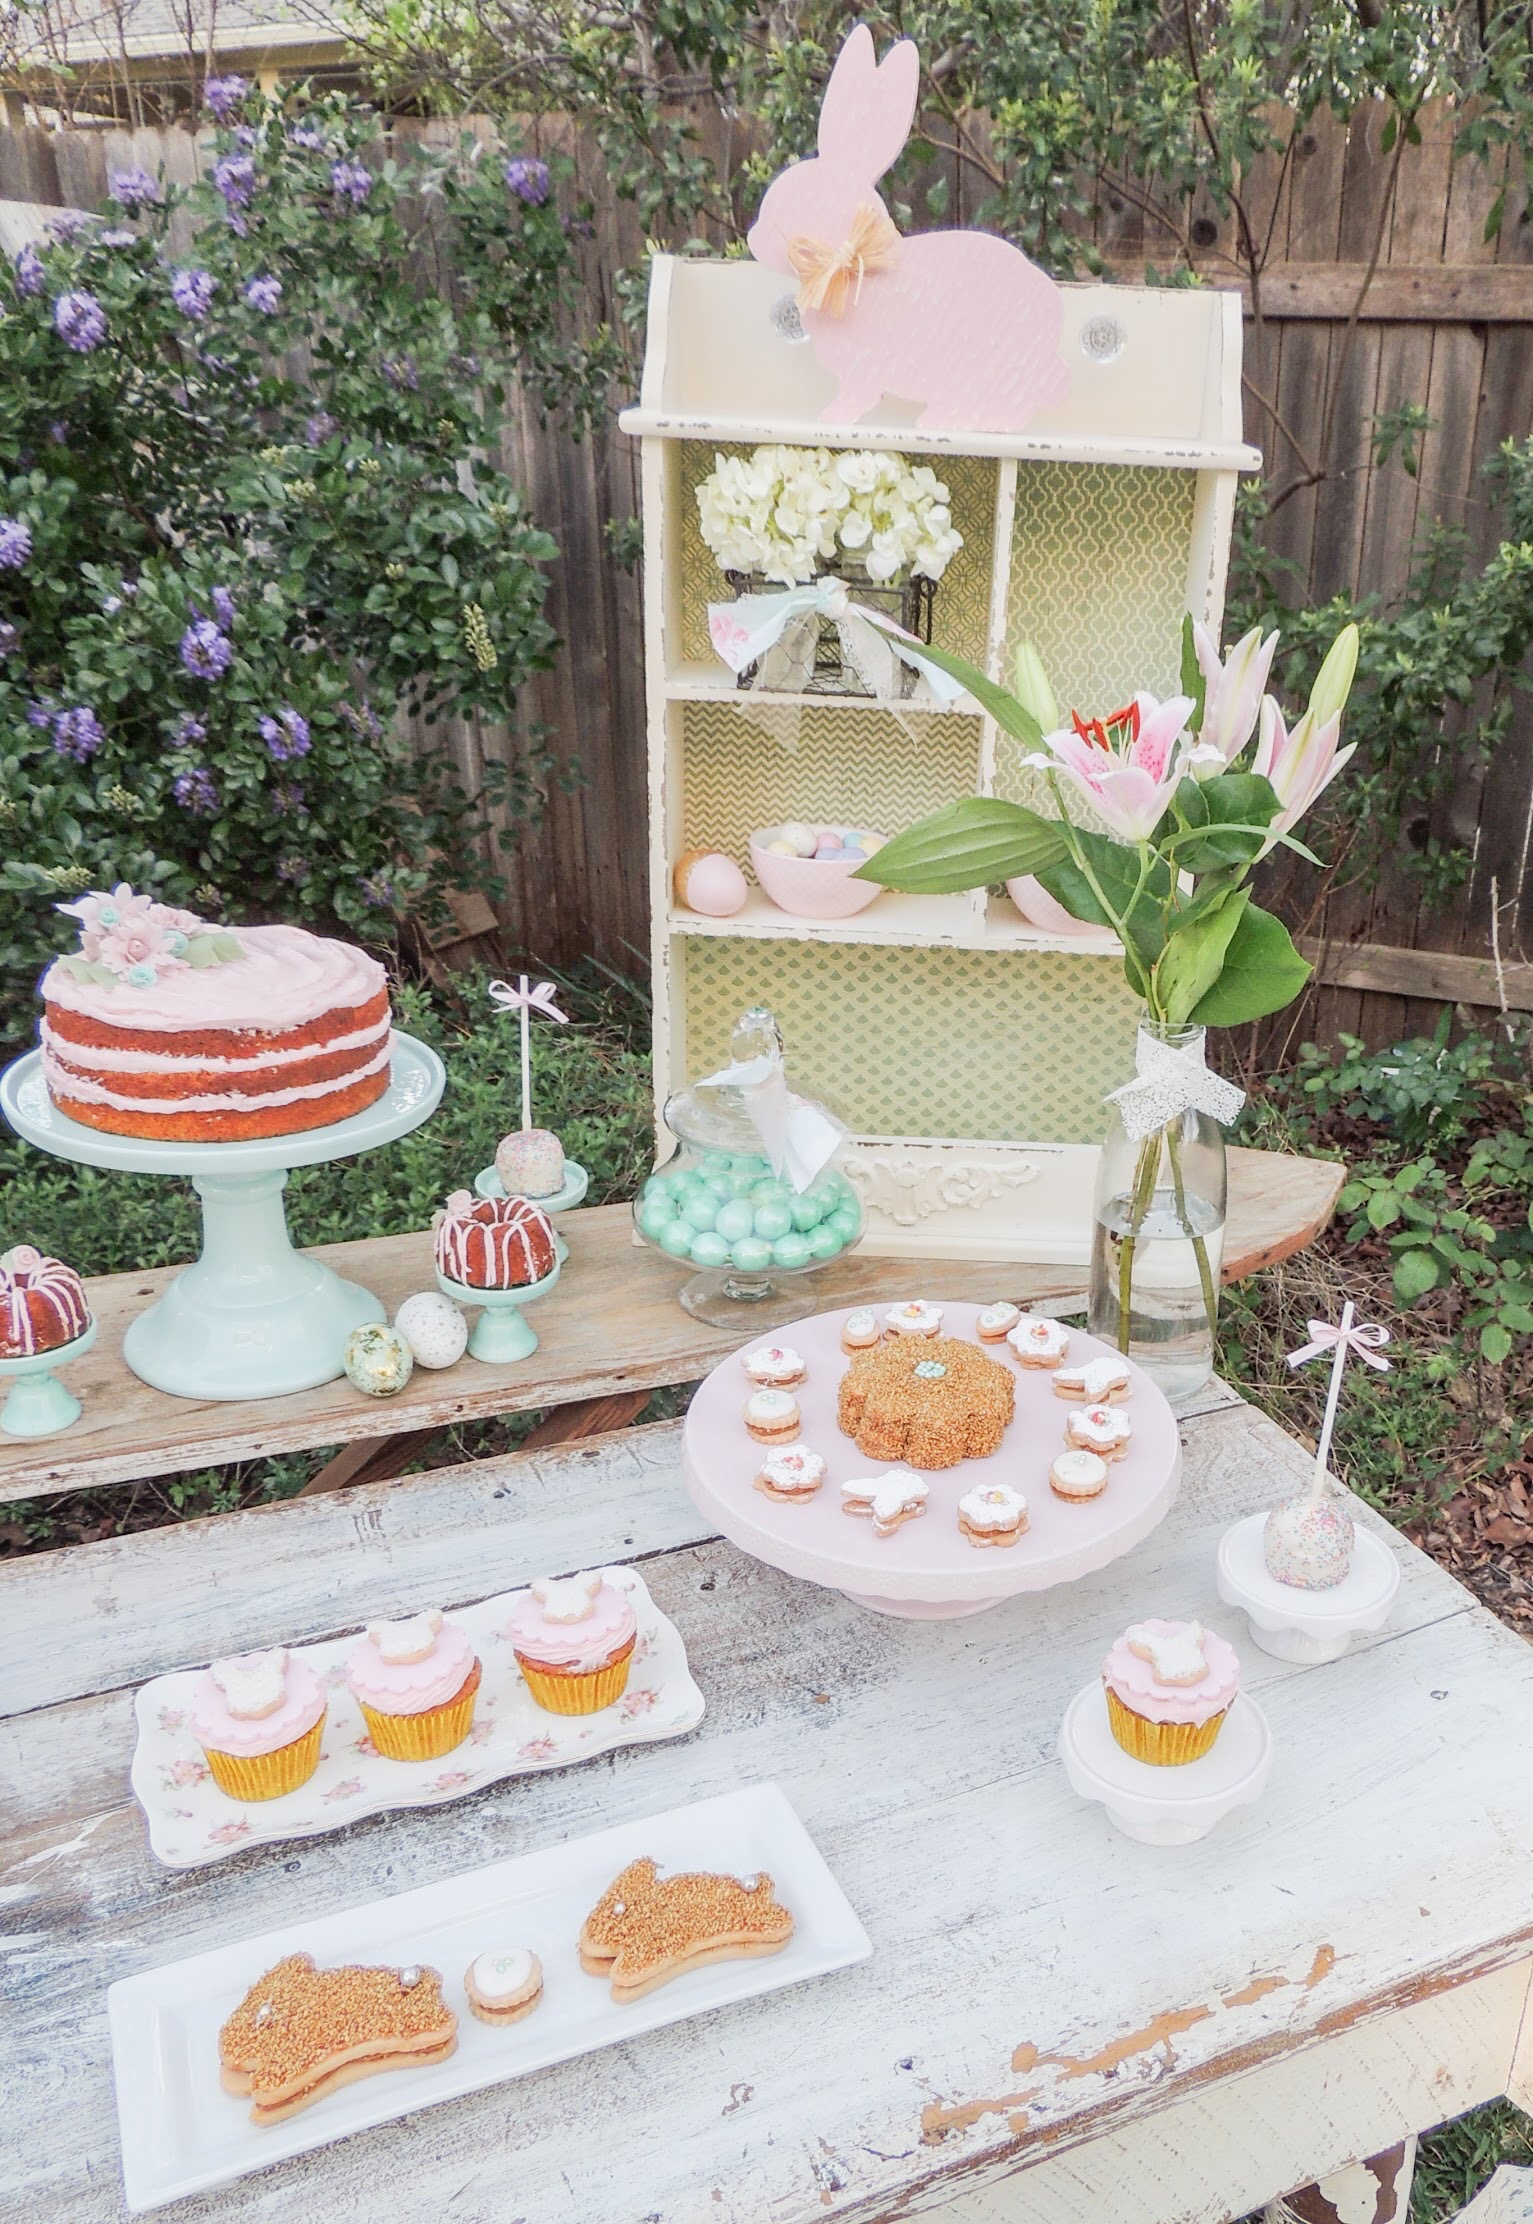 Pastel colored Easter Party Ideas. Styling by Austin Texas Party Planer Mint Event Design www.minteventdesign.com #eastertable #easterdecor #easterparty #partyideas #easterideas